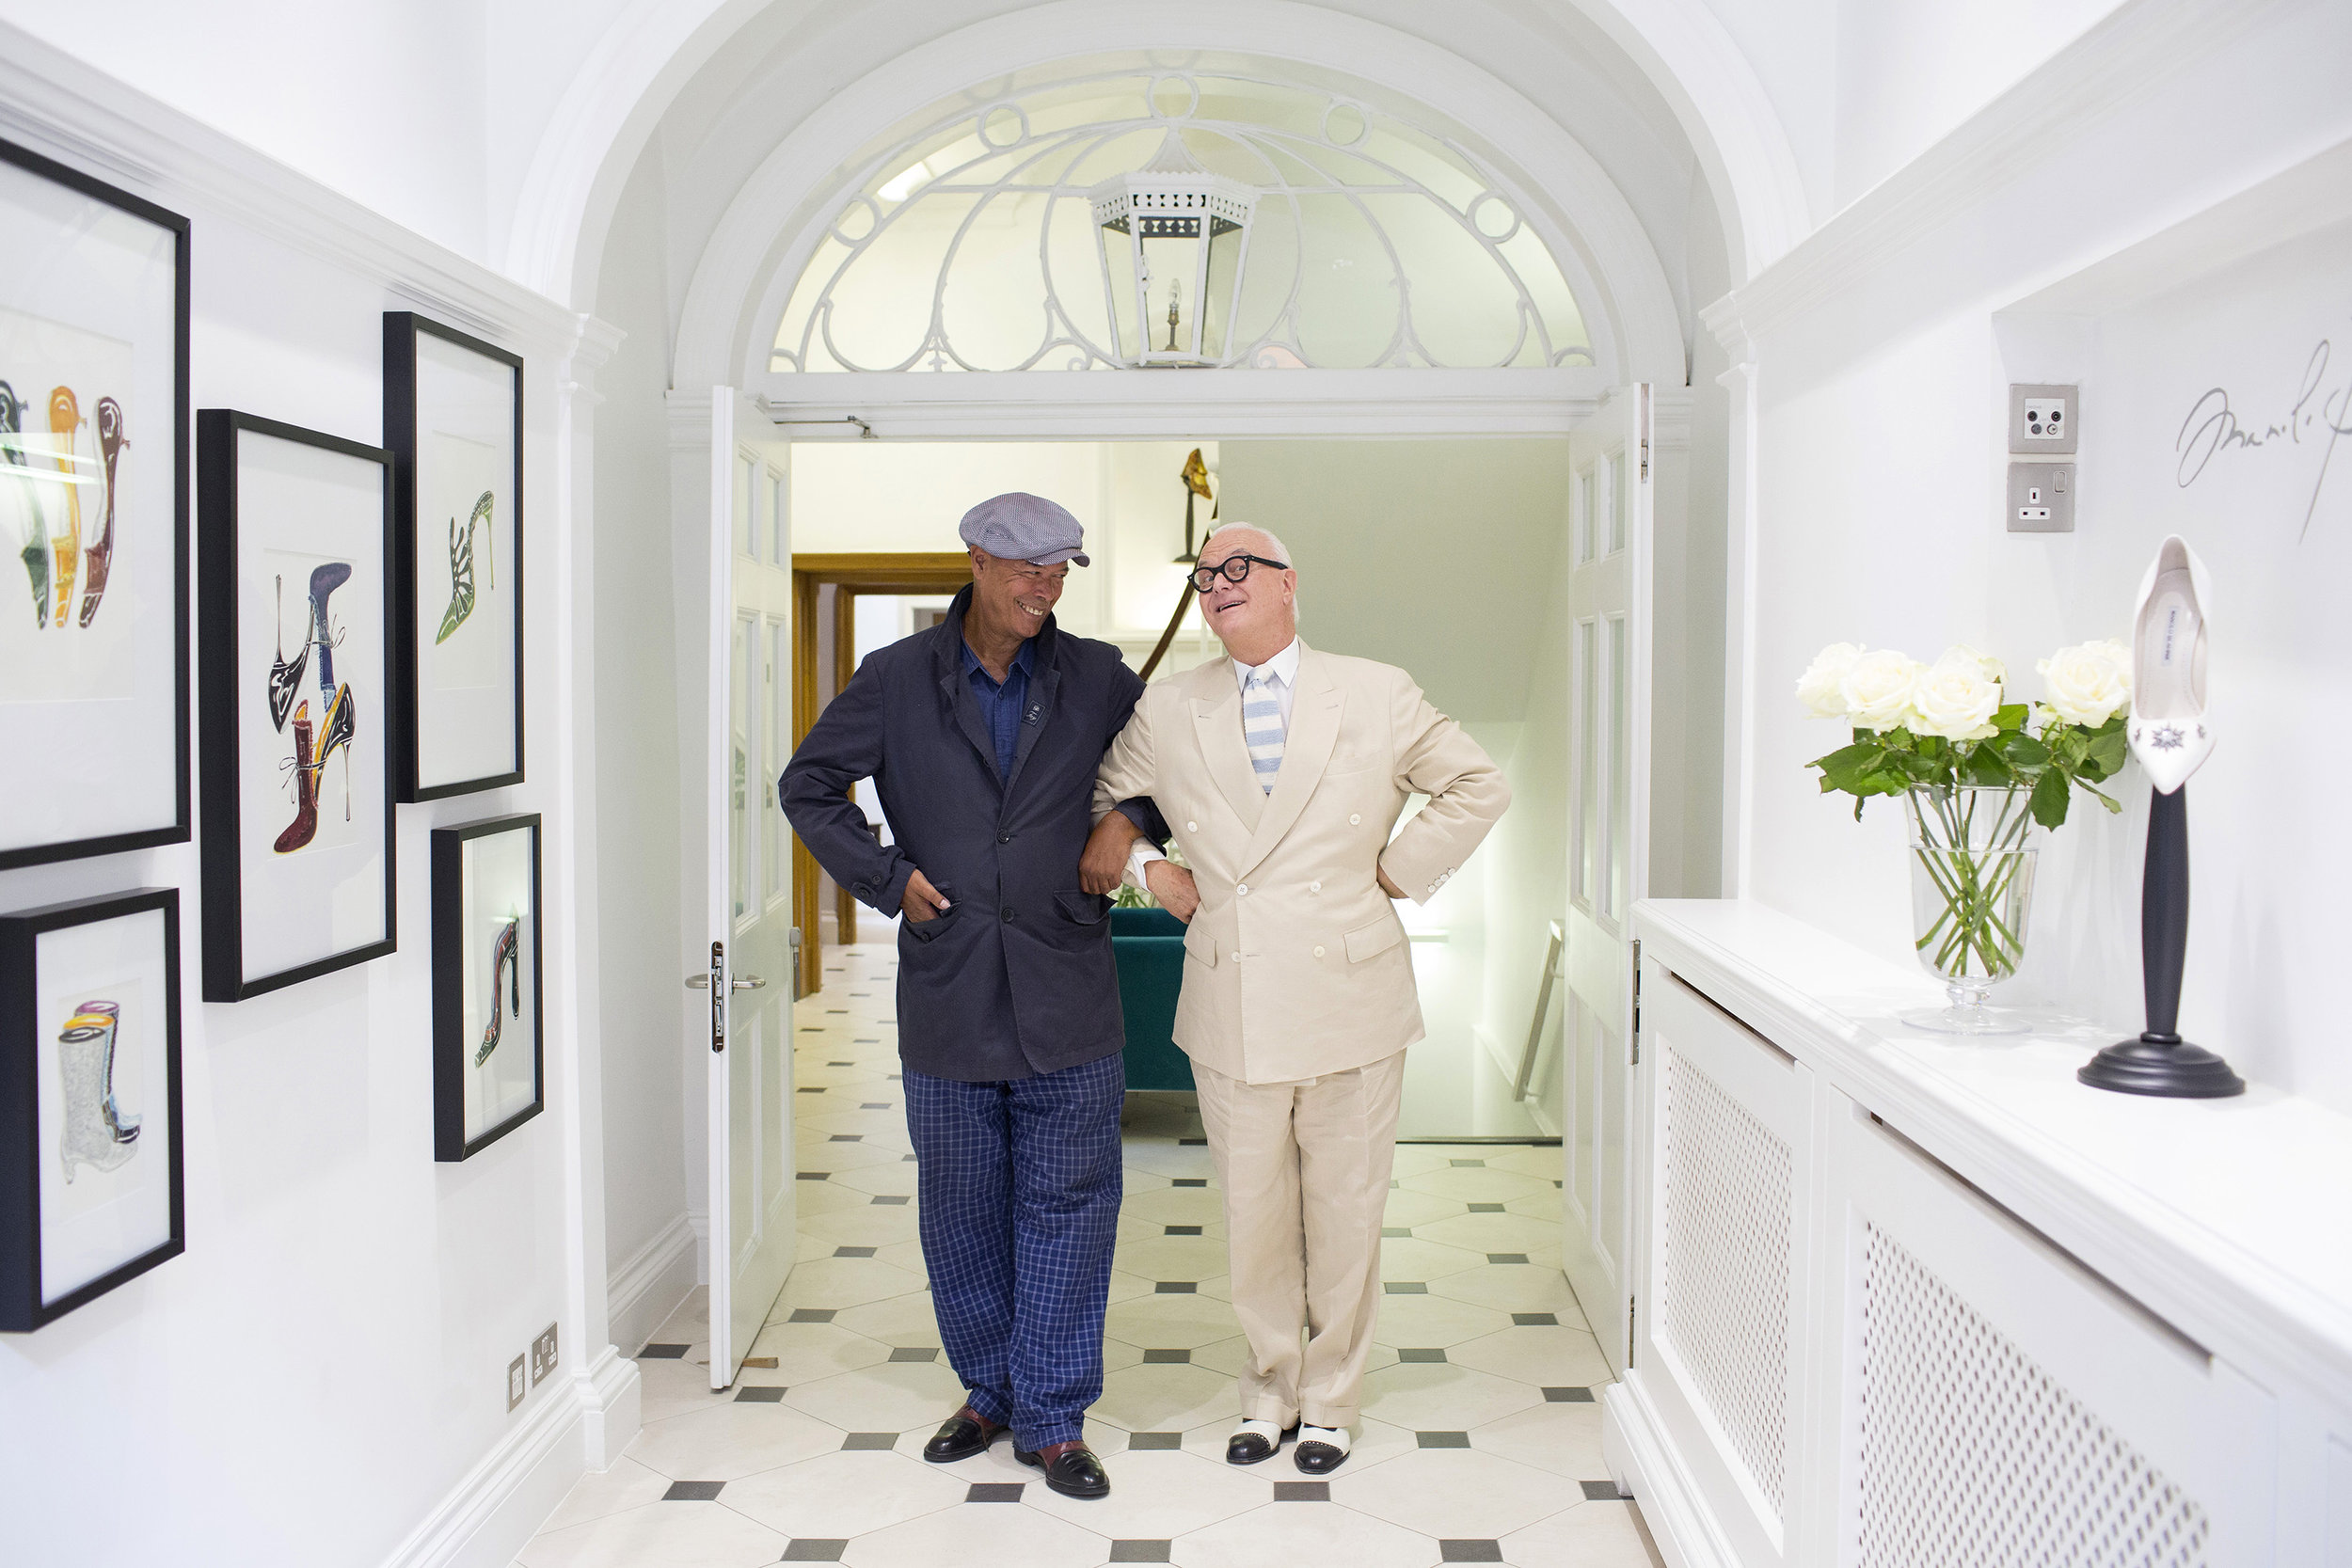 Manolo Blahnik and Michael Roberts, photographed in London for The New York Times